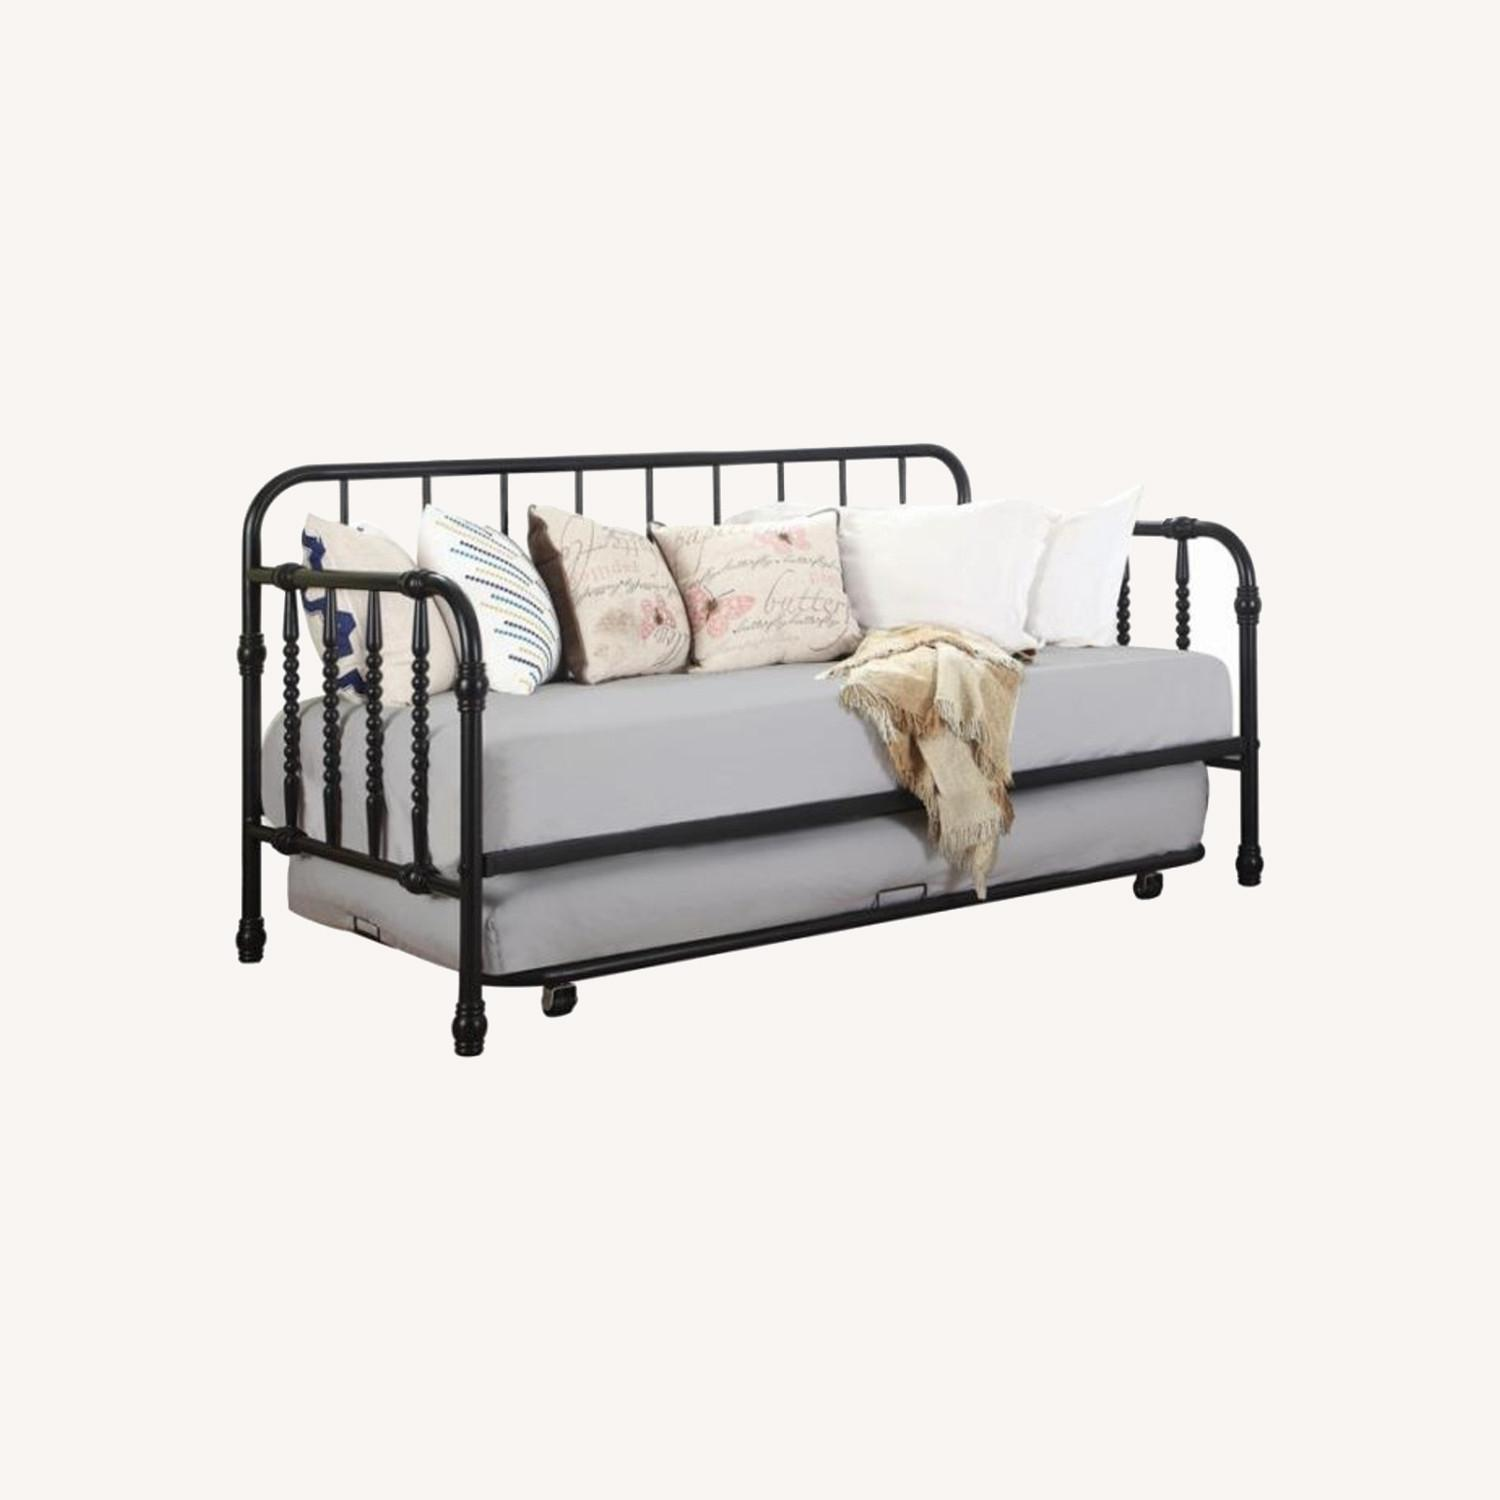 Twin Daybed In Black Metal Finish W/ Trundle - image-6